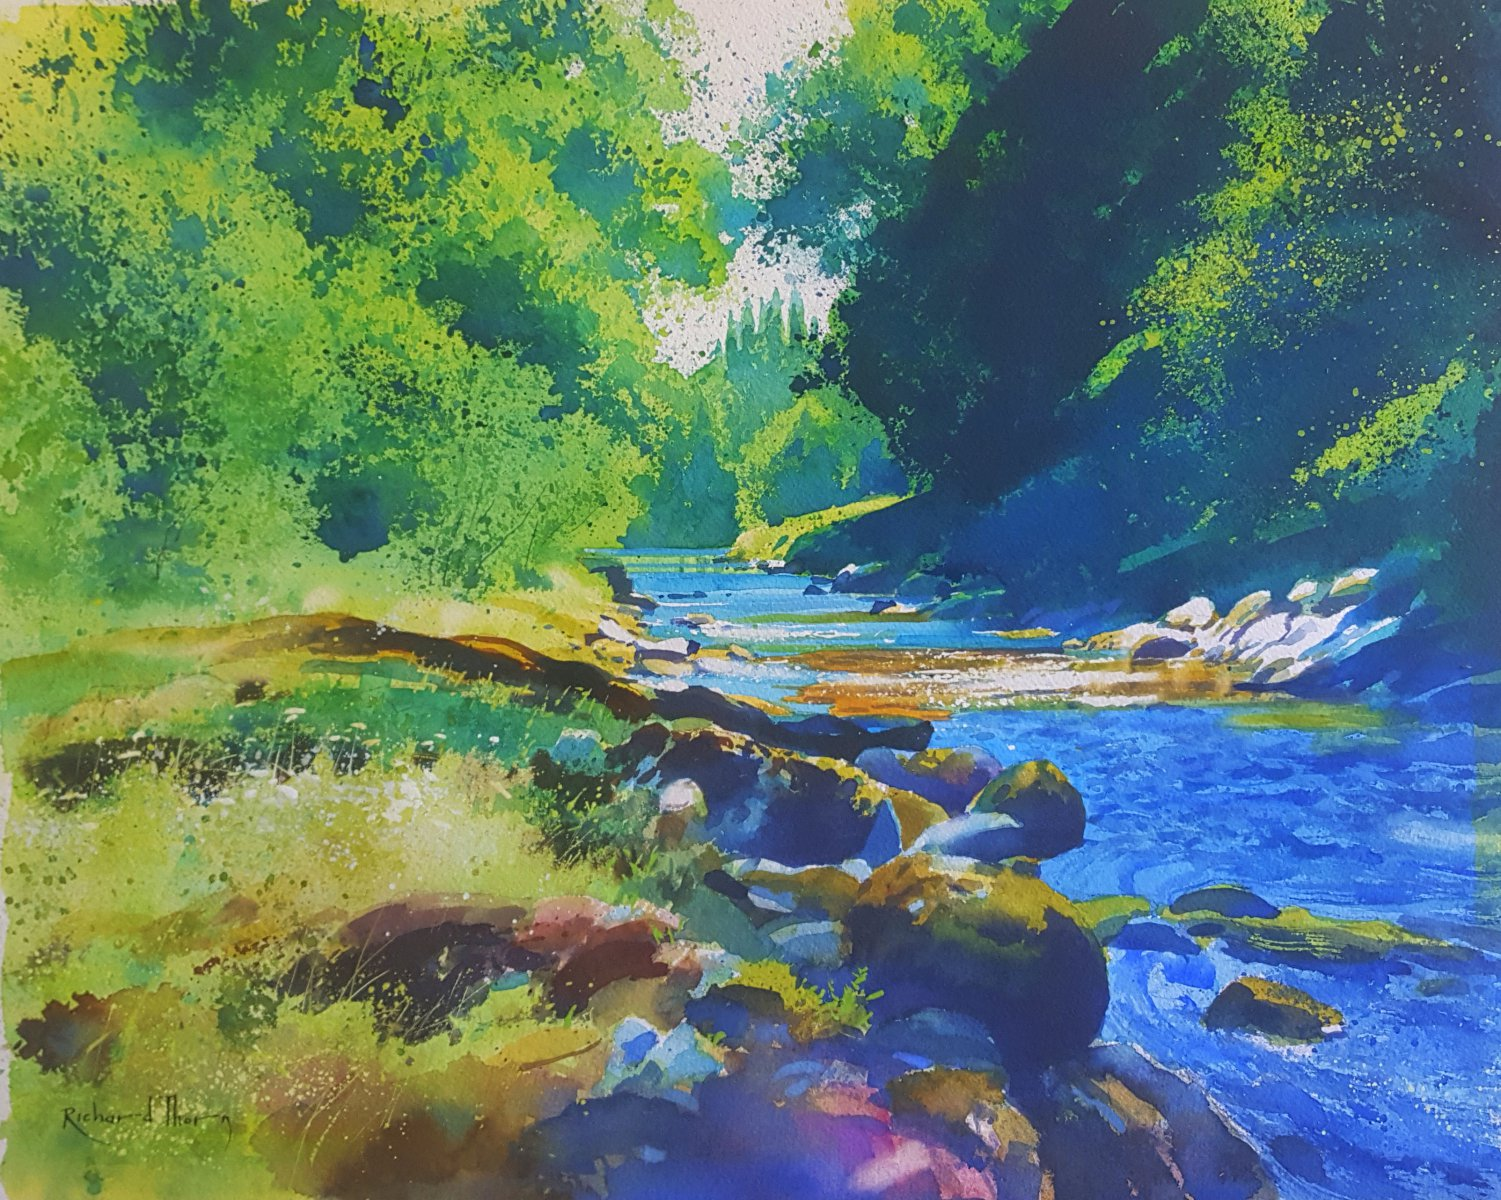 River Dart (at Ashburton country park) - Richard Thorn